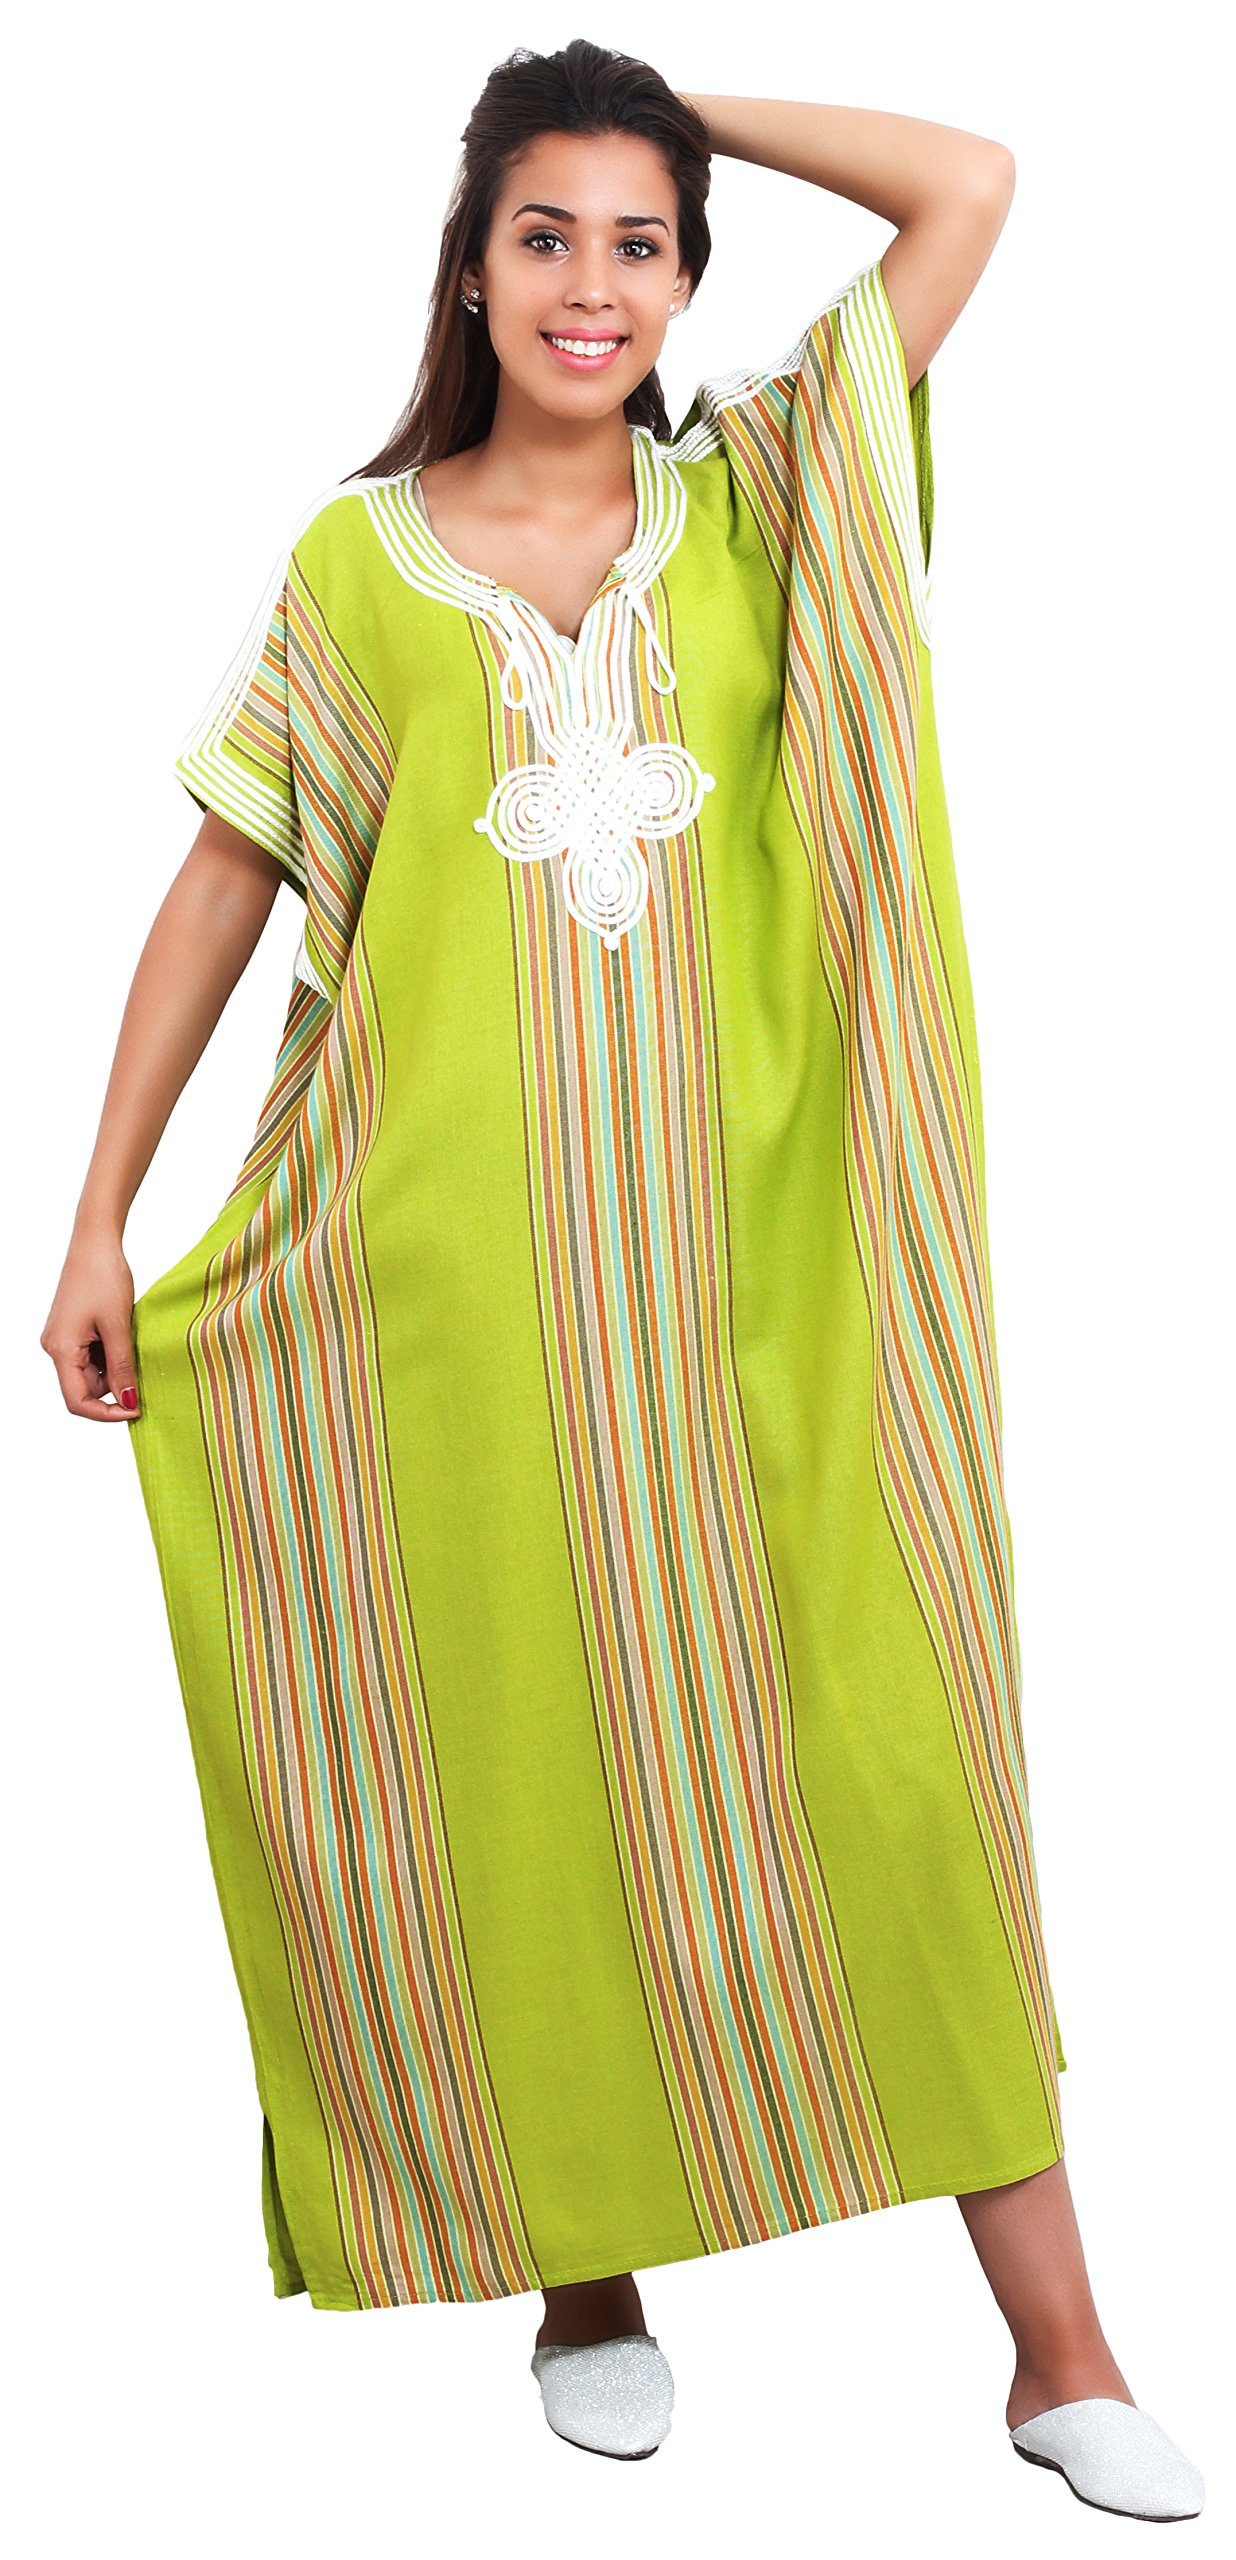 Moroccan Caftans Women Light Linen Handmade Embroidery SMALL to LARGE Lime